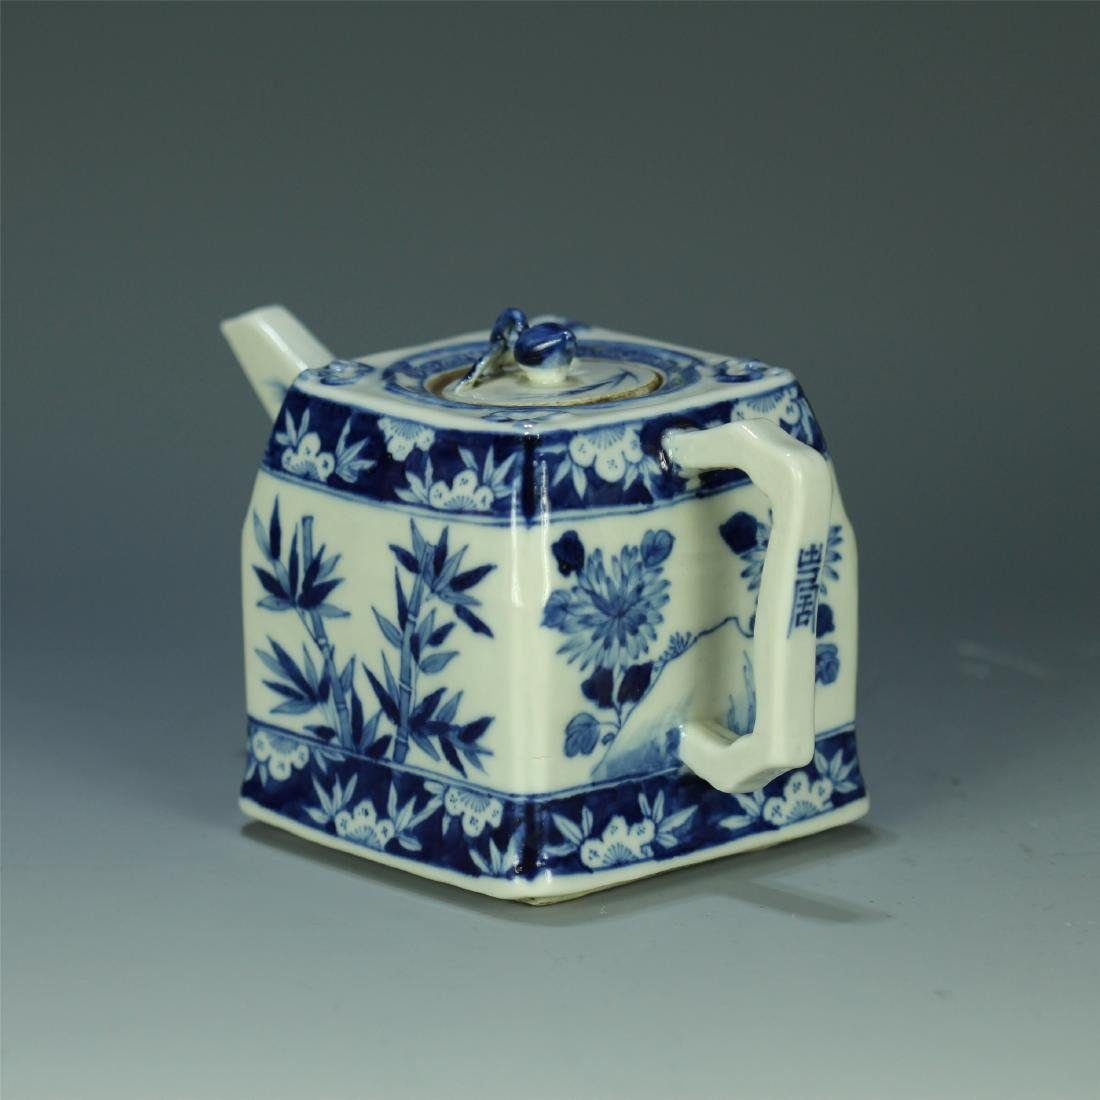 CHINESE PORCELAIN BLUE AND WHITE FLOWER TEA POT